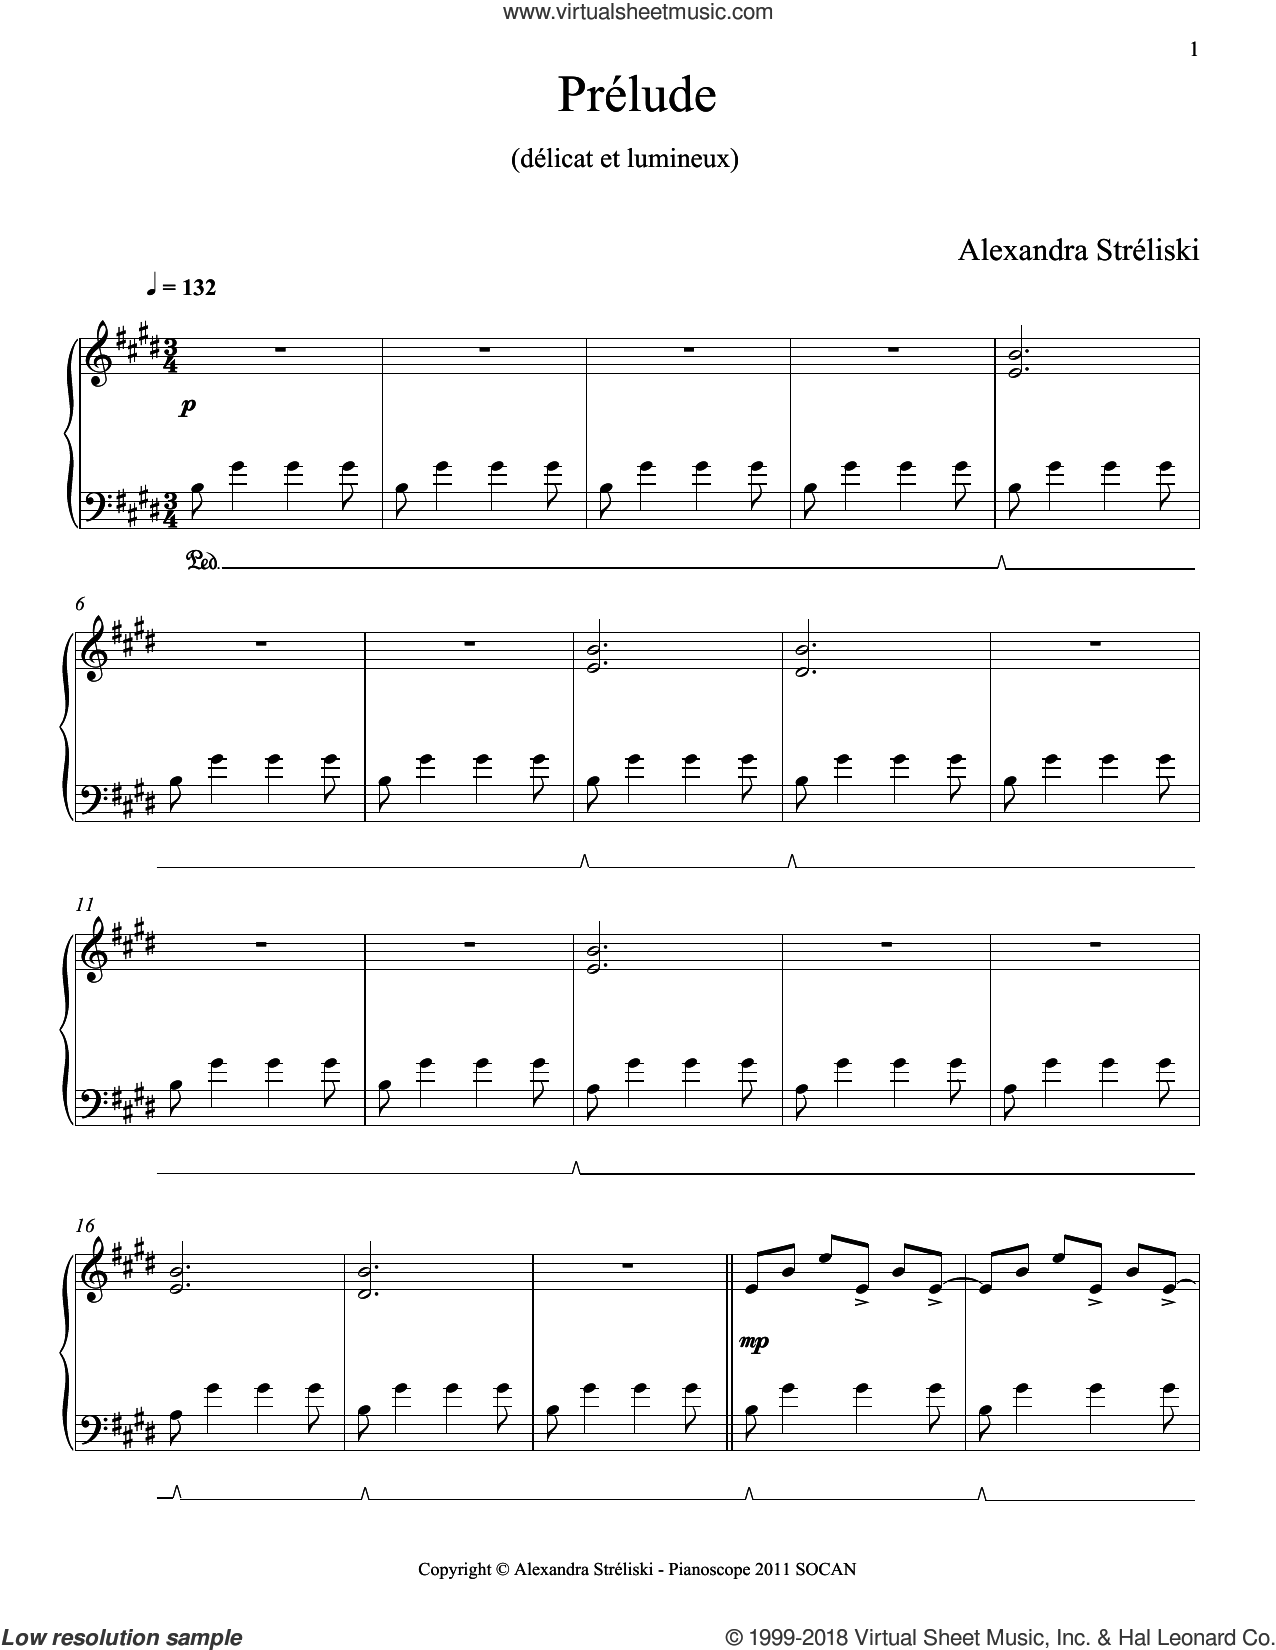 Prelude sheet music for piano solo by Alexandra Streliski, classical score, intermediate skill level